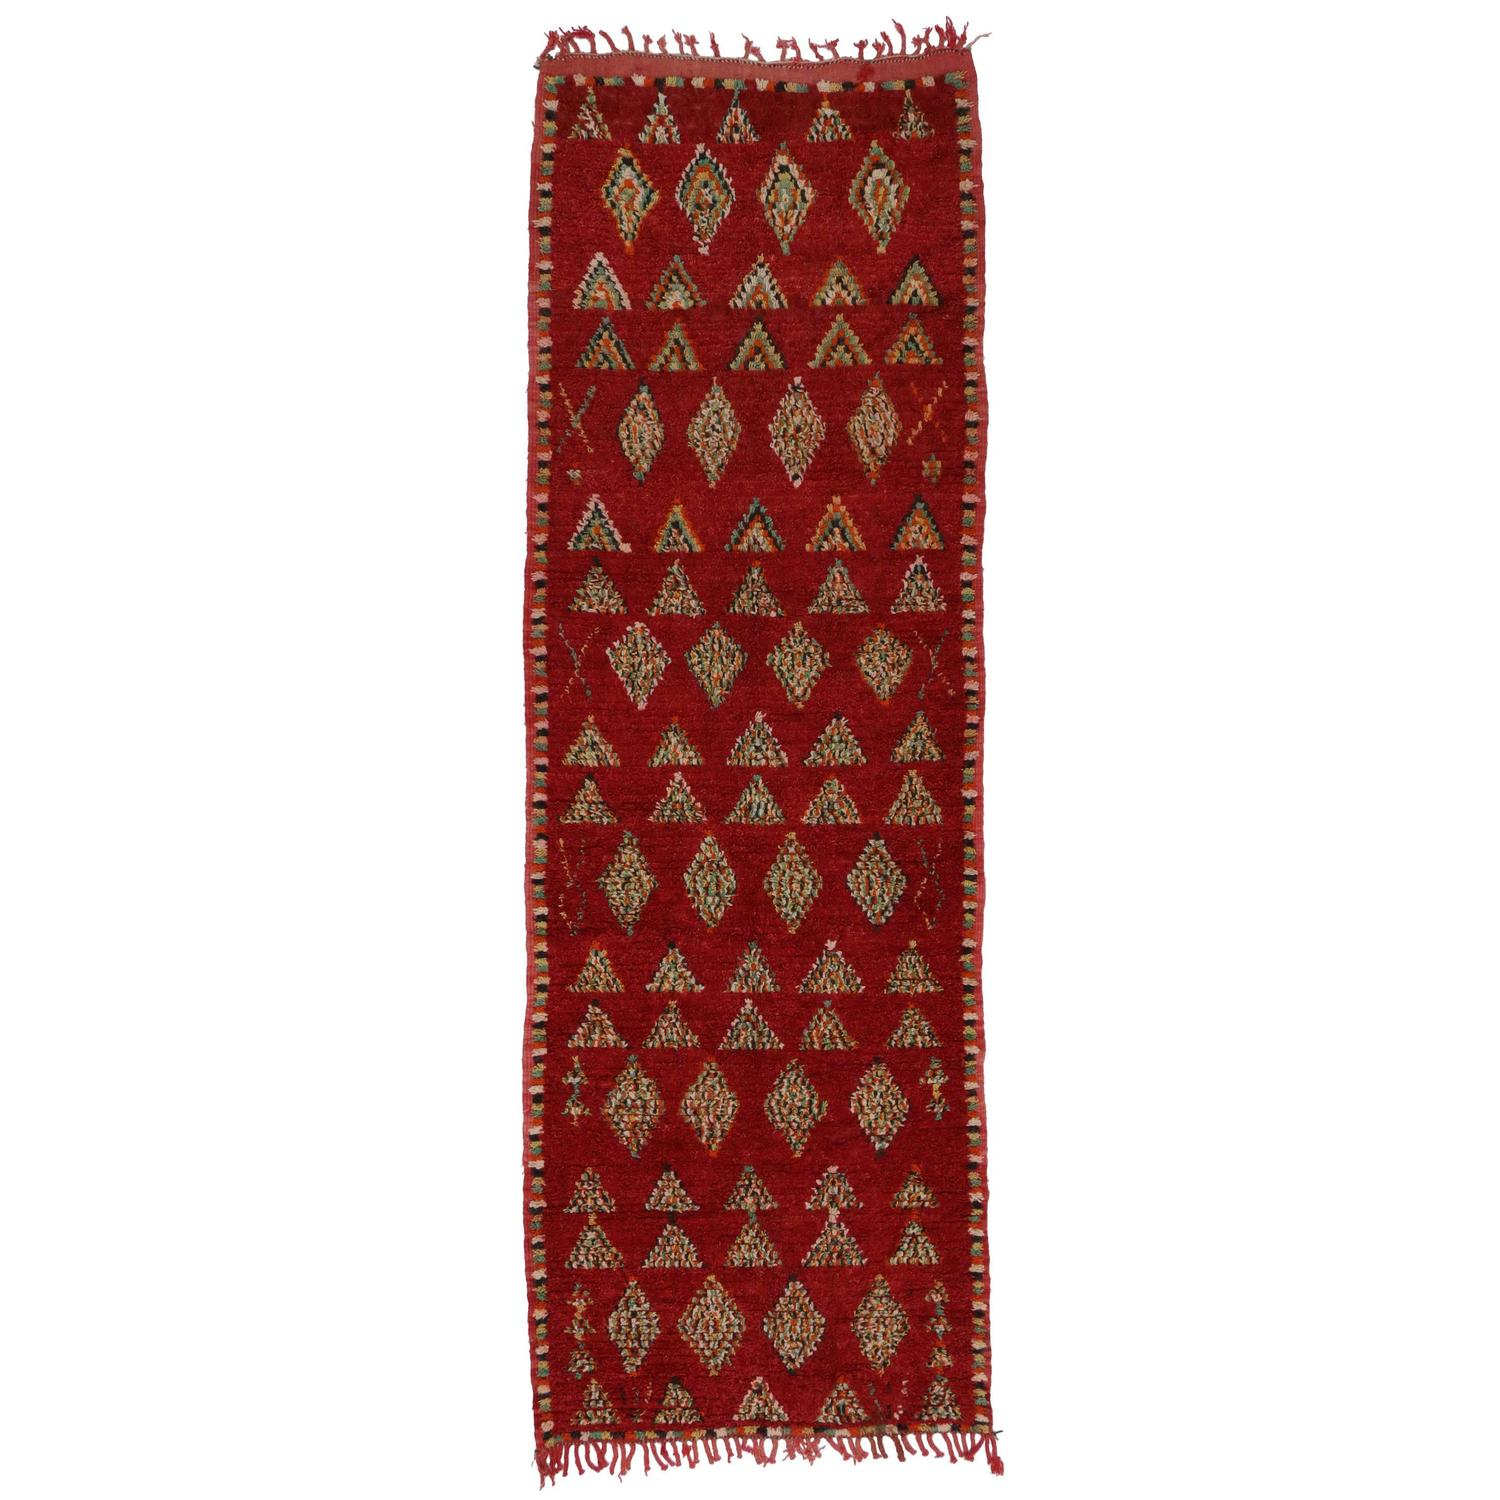 Mid Century Modern Style Red Berber Moroccan Rug With: Berber Moroccan Carpet Runner With Tribal Design And Mid